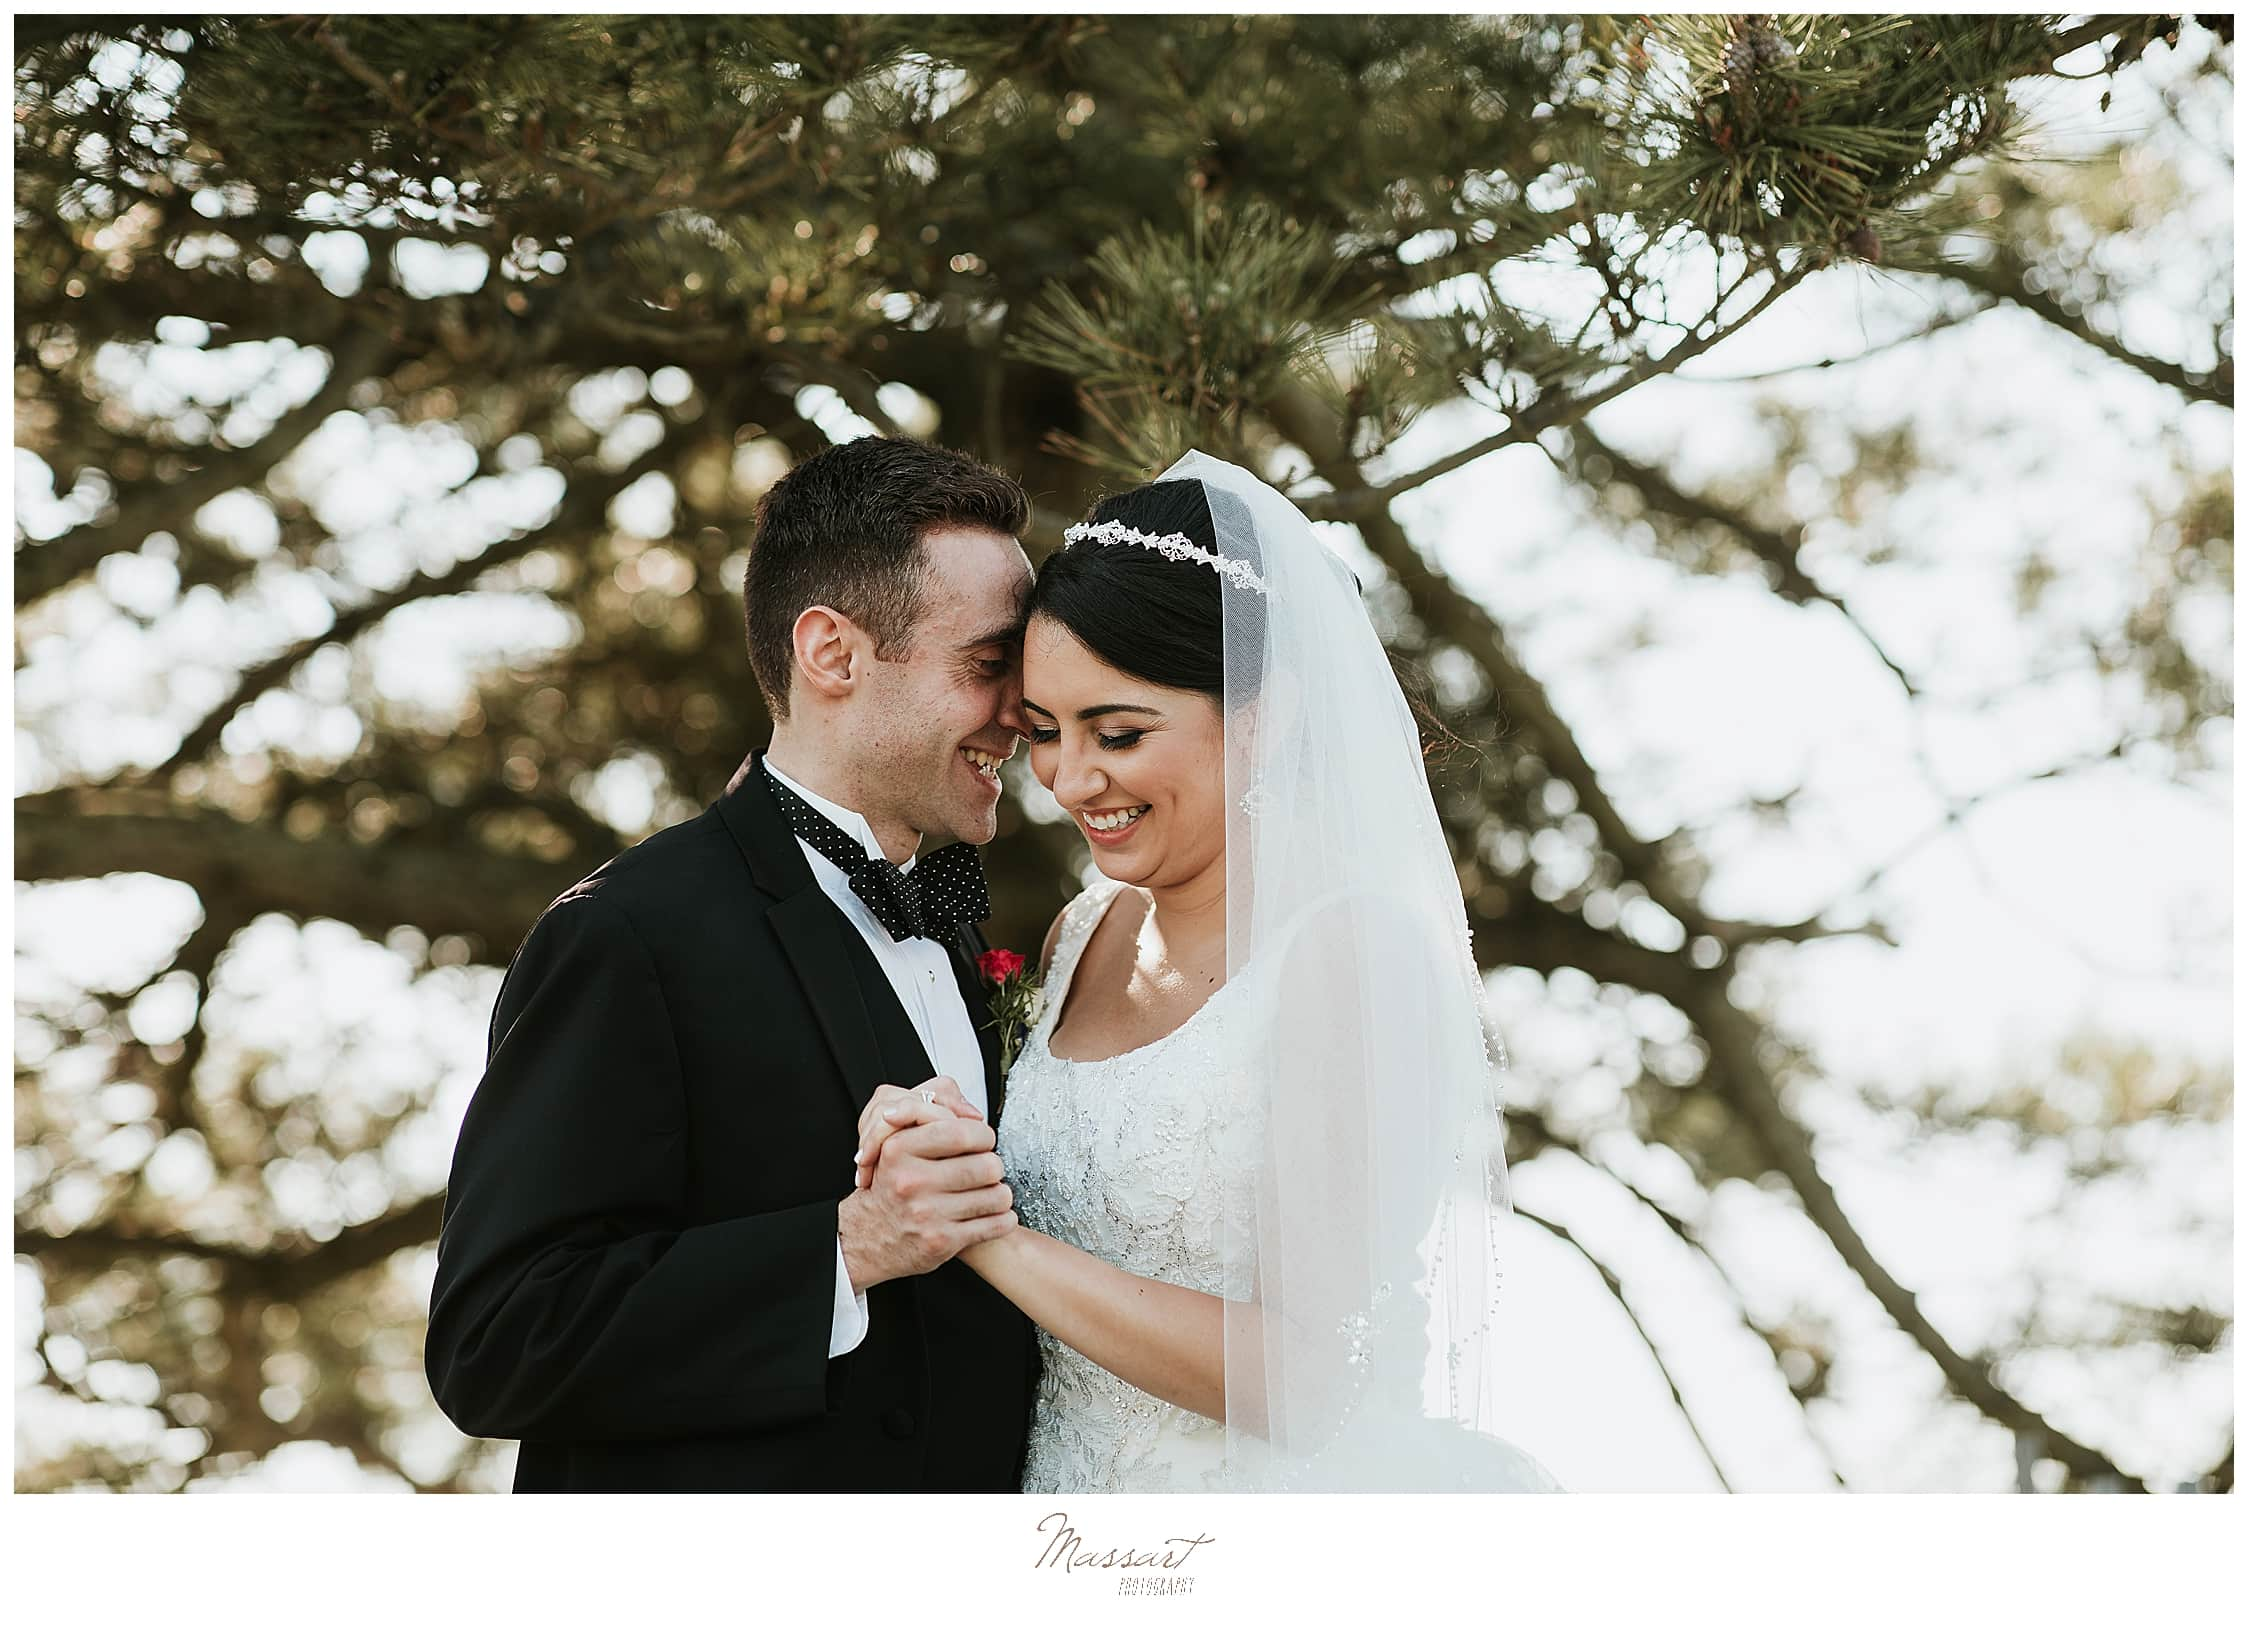 newlywed portraits by RI wedding photographers Massart Photography